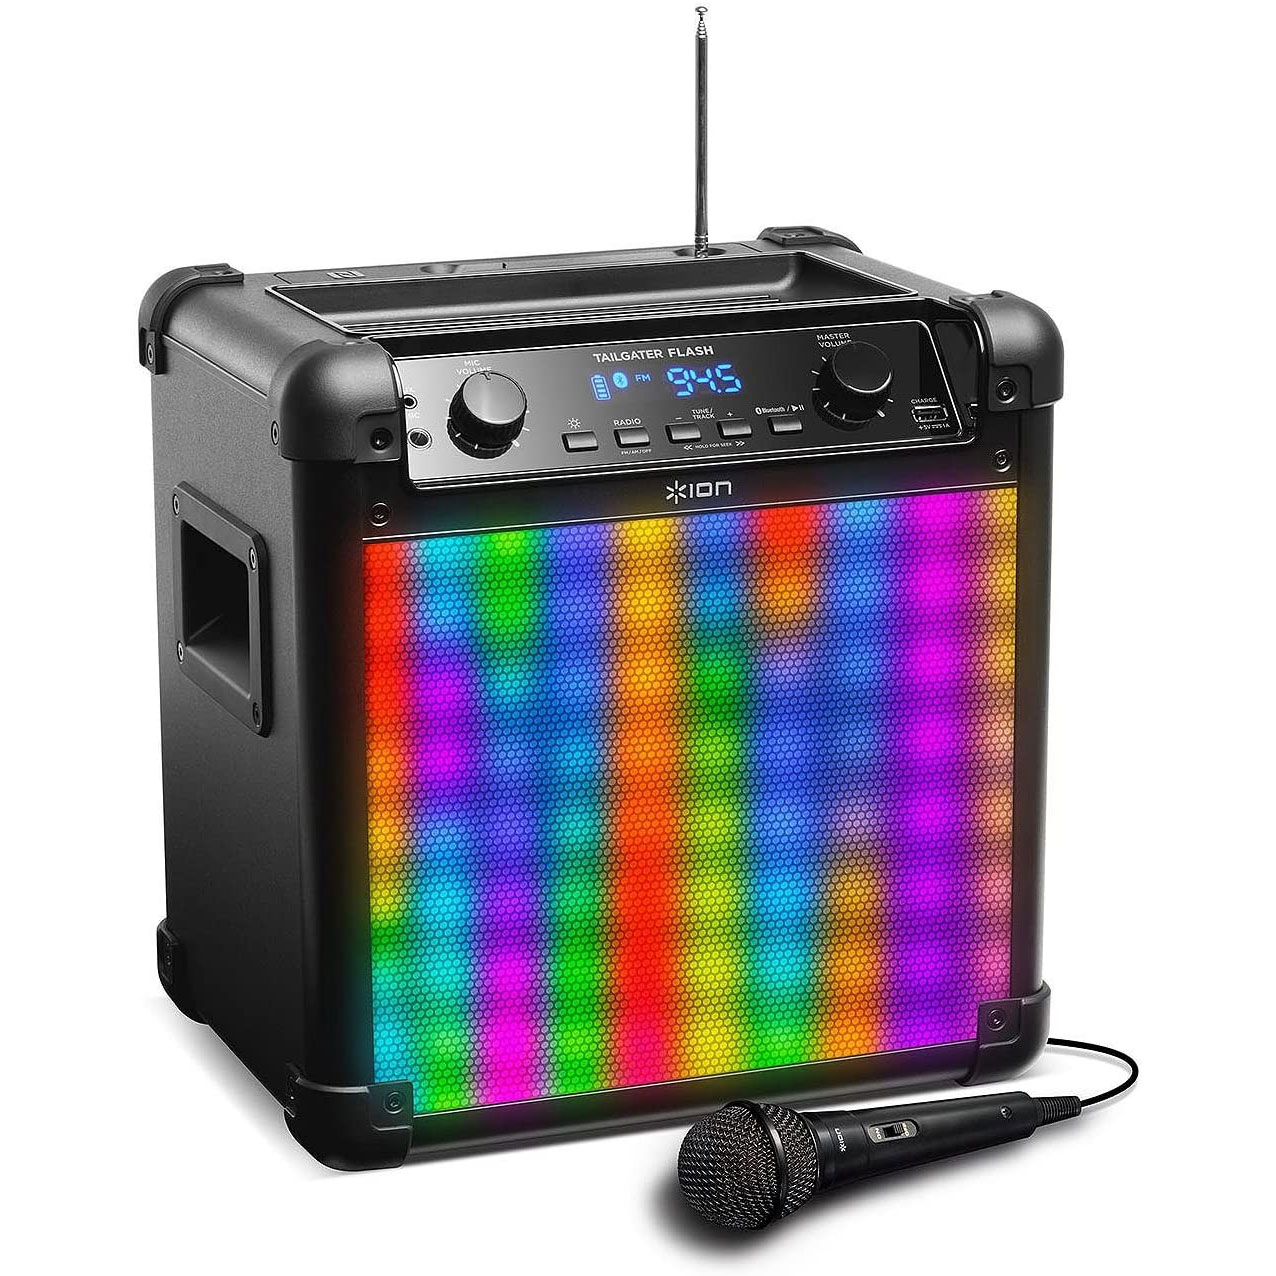 ION AUDIO Tailgater Flash Portable Speaker System with Lights USED